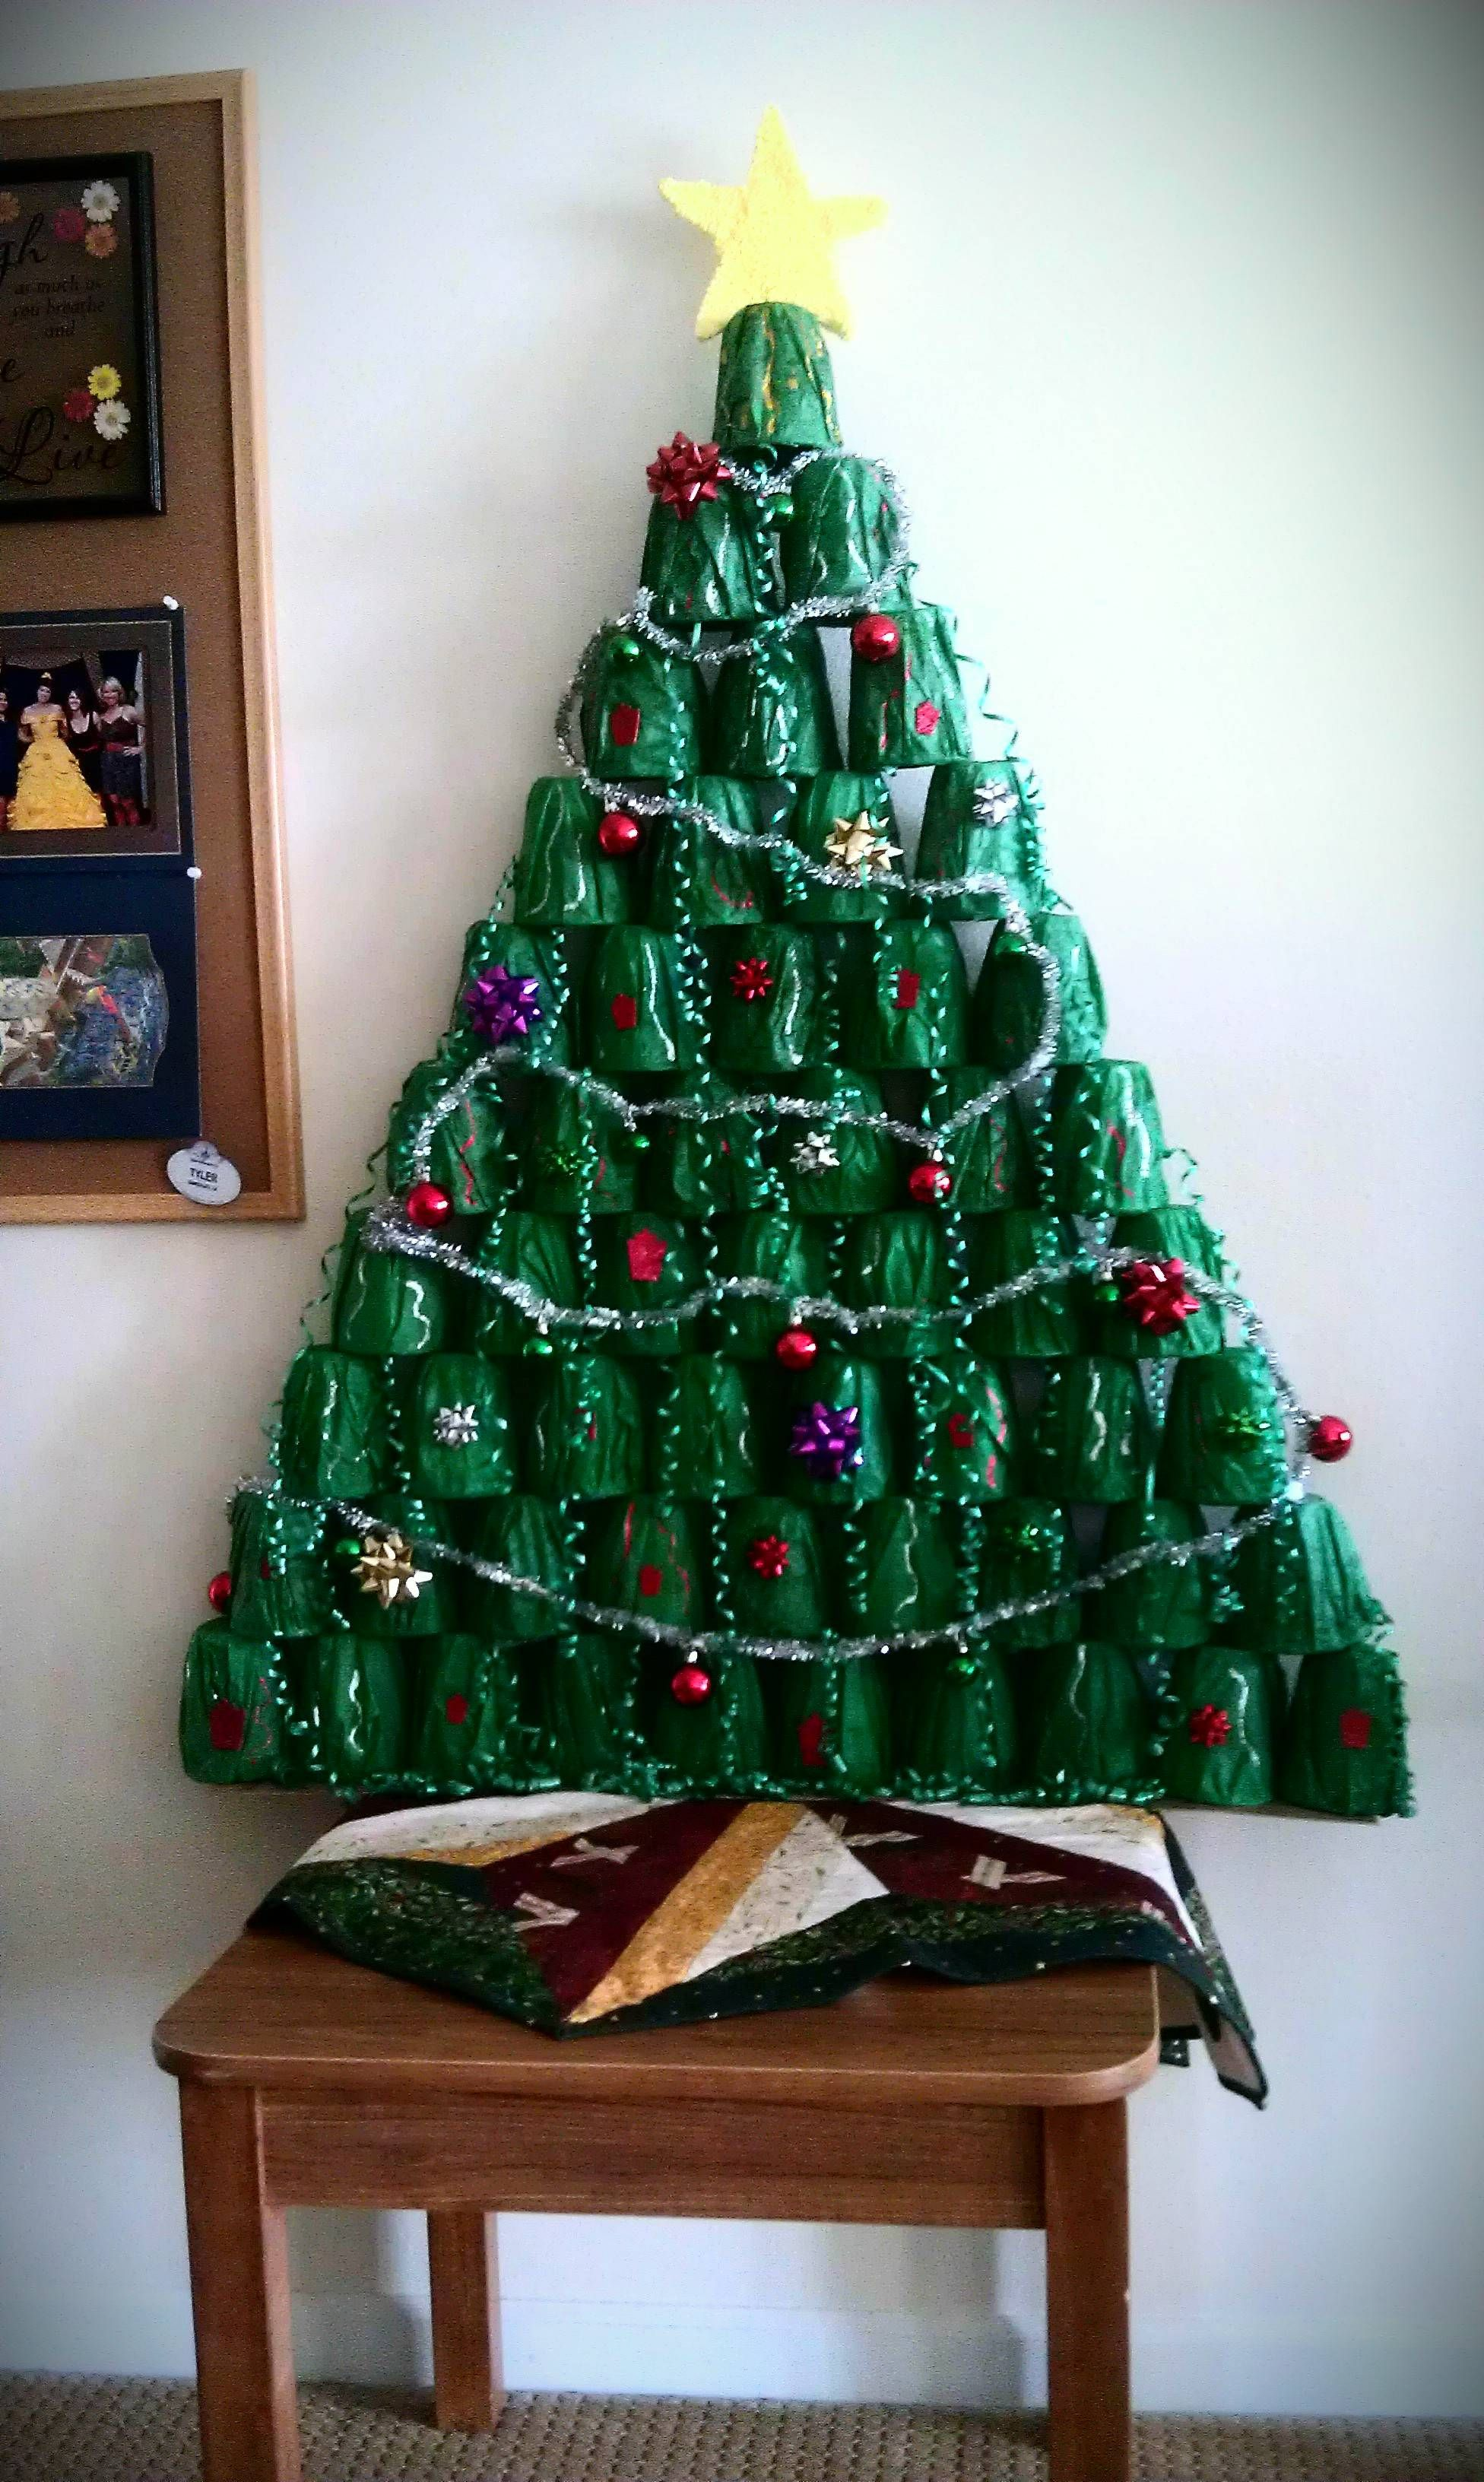 My roomates and I made a Christmas tree out of plastic cups t